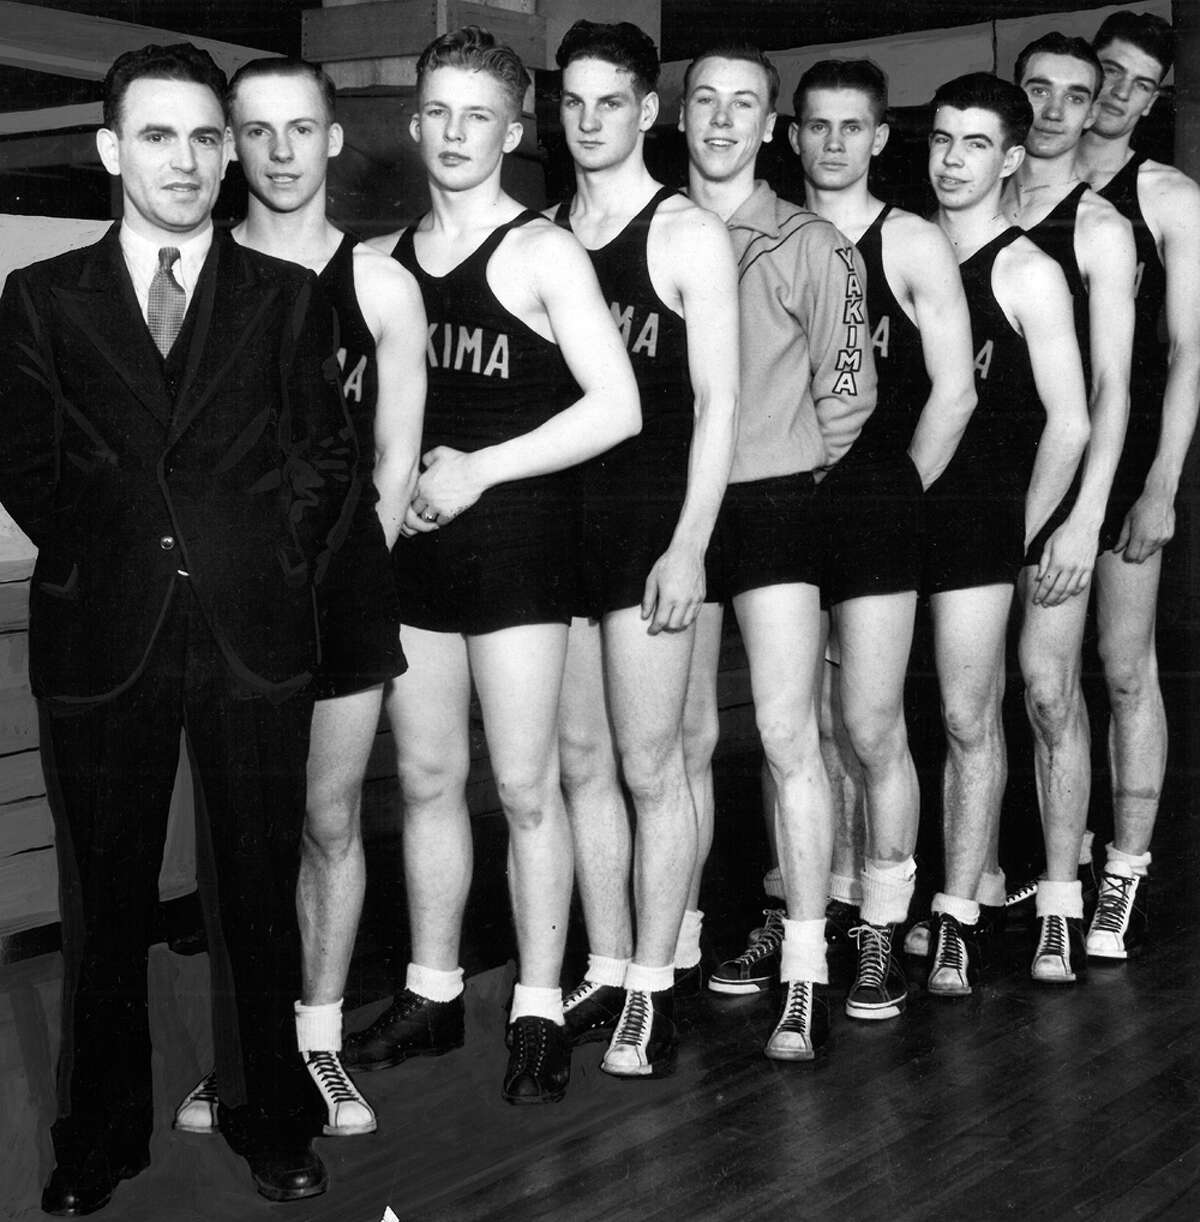 This March 1935 photo shows the Yakima basketball team that beat Prescott. Left to right are Coach Art Cheyne, Bryant Russell, Don Dwinnell, John Crim, Kenneth Warren, Cassius Dolquist, Bill Sherman, Albert Rooney, and Art Berg. Berg and Dolquist were selected all-tournament players.